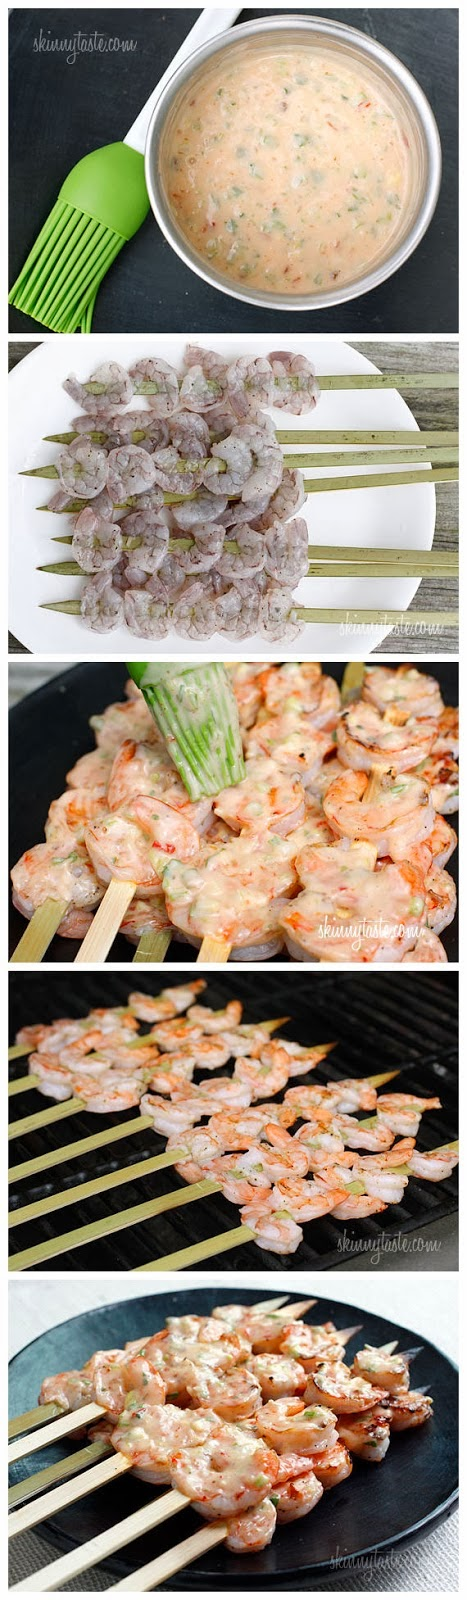 Bangin & Grilled Shrimp Skewers